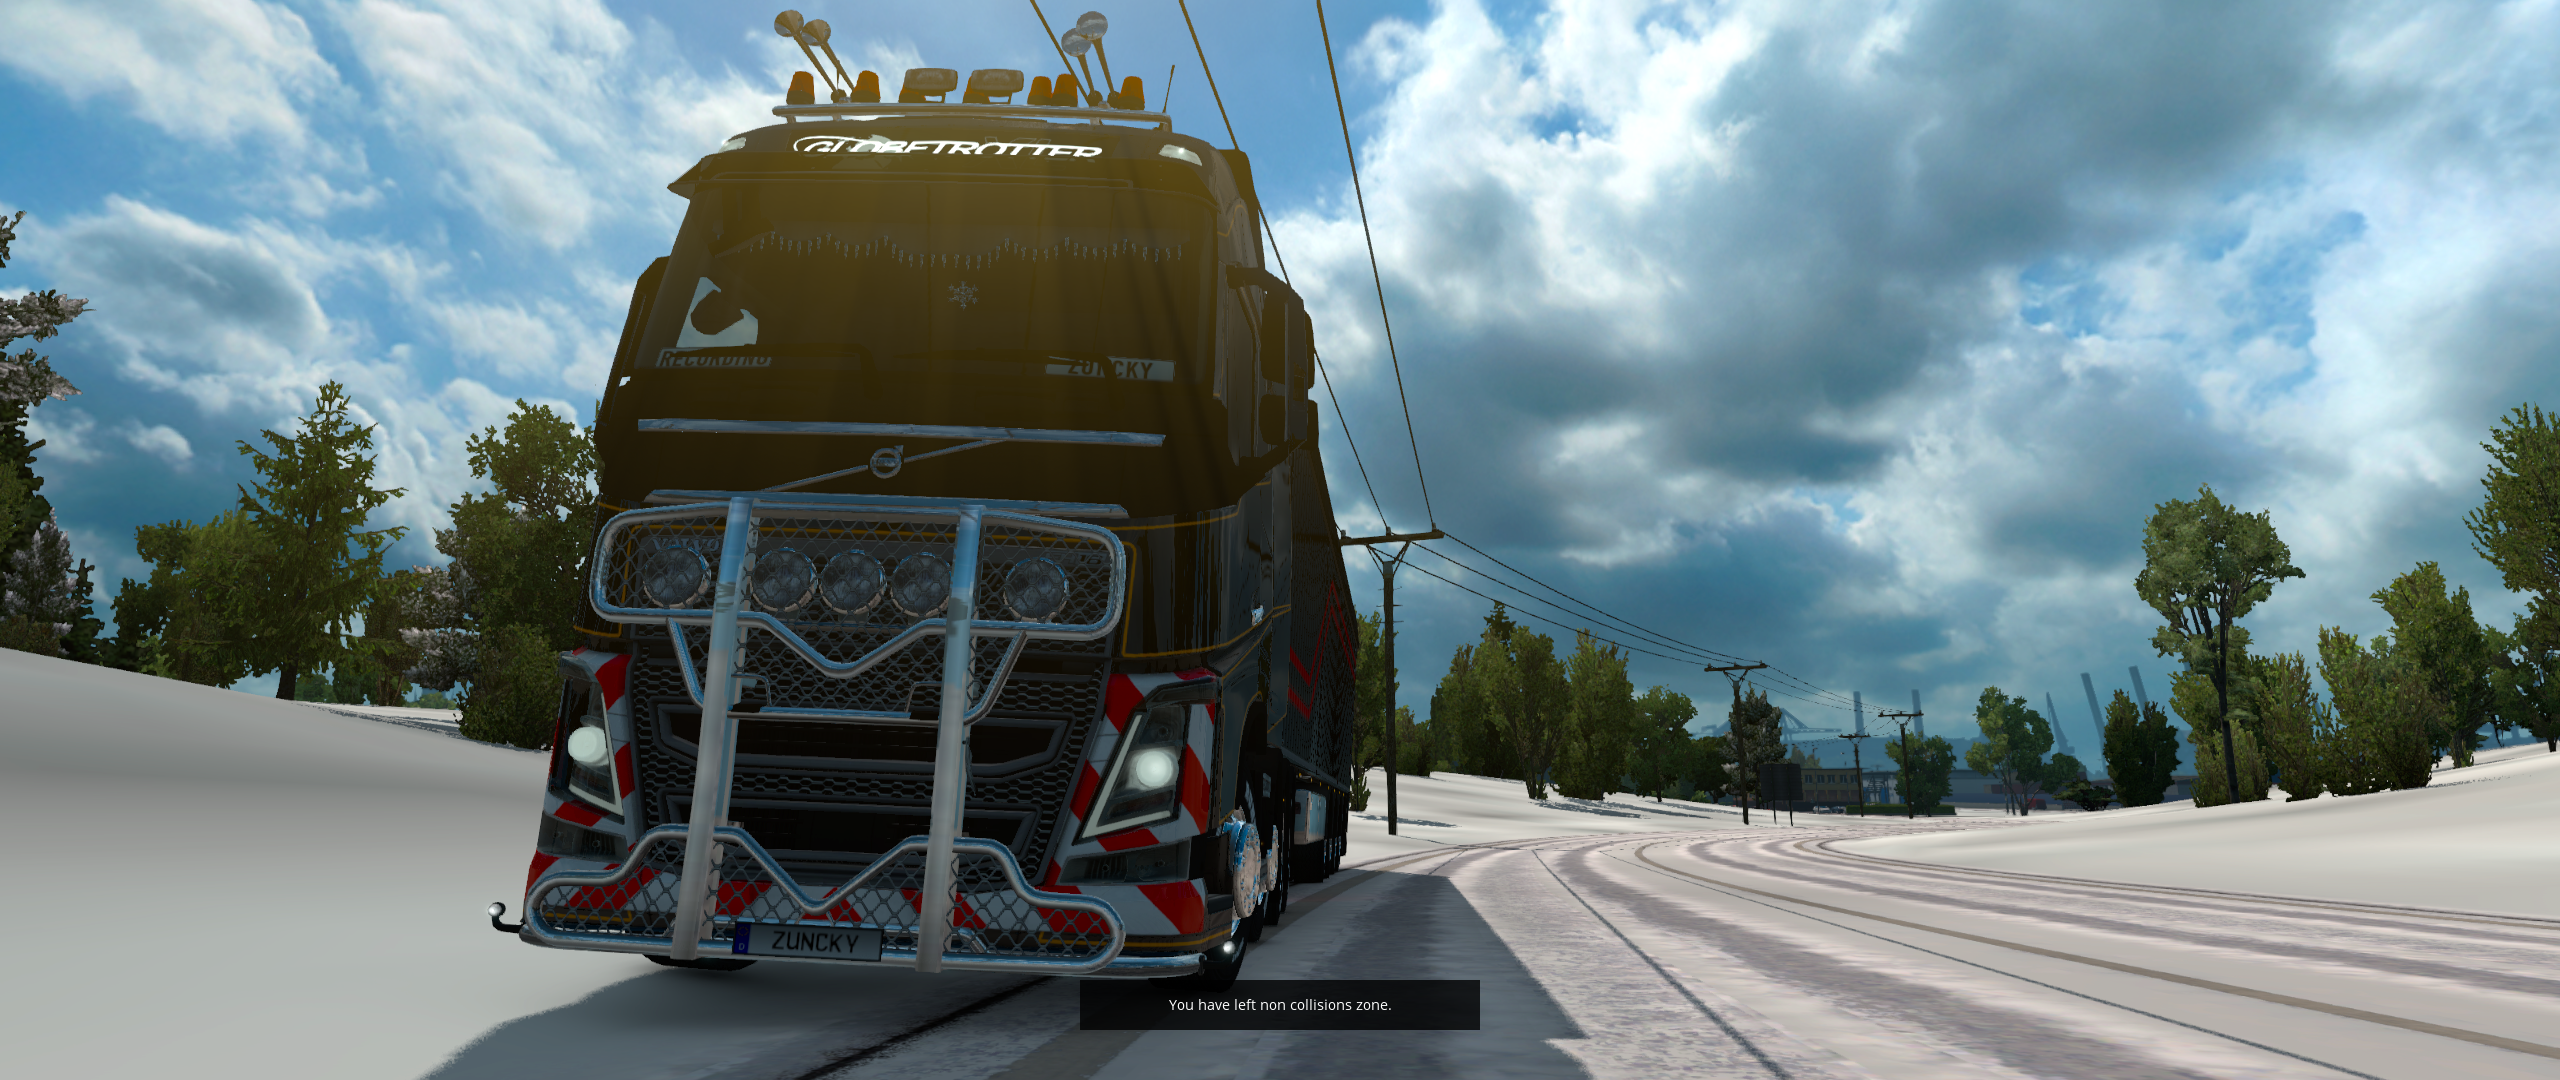 ets2_20190109_184642_00.png